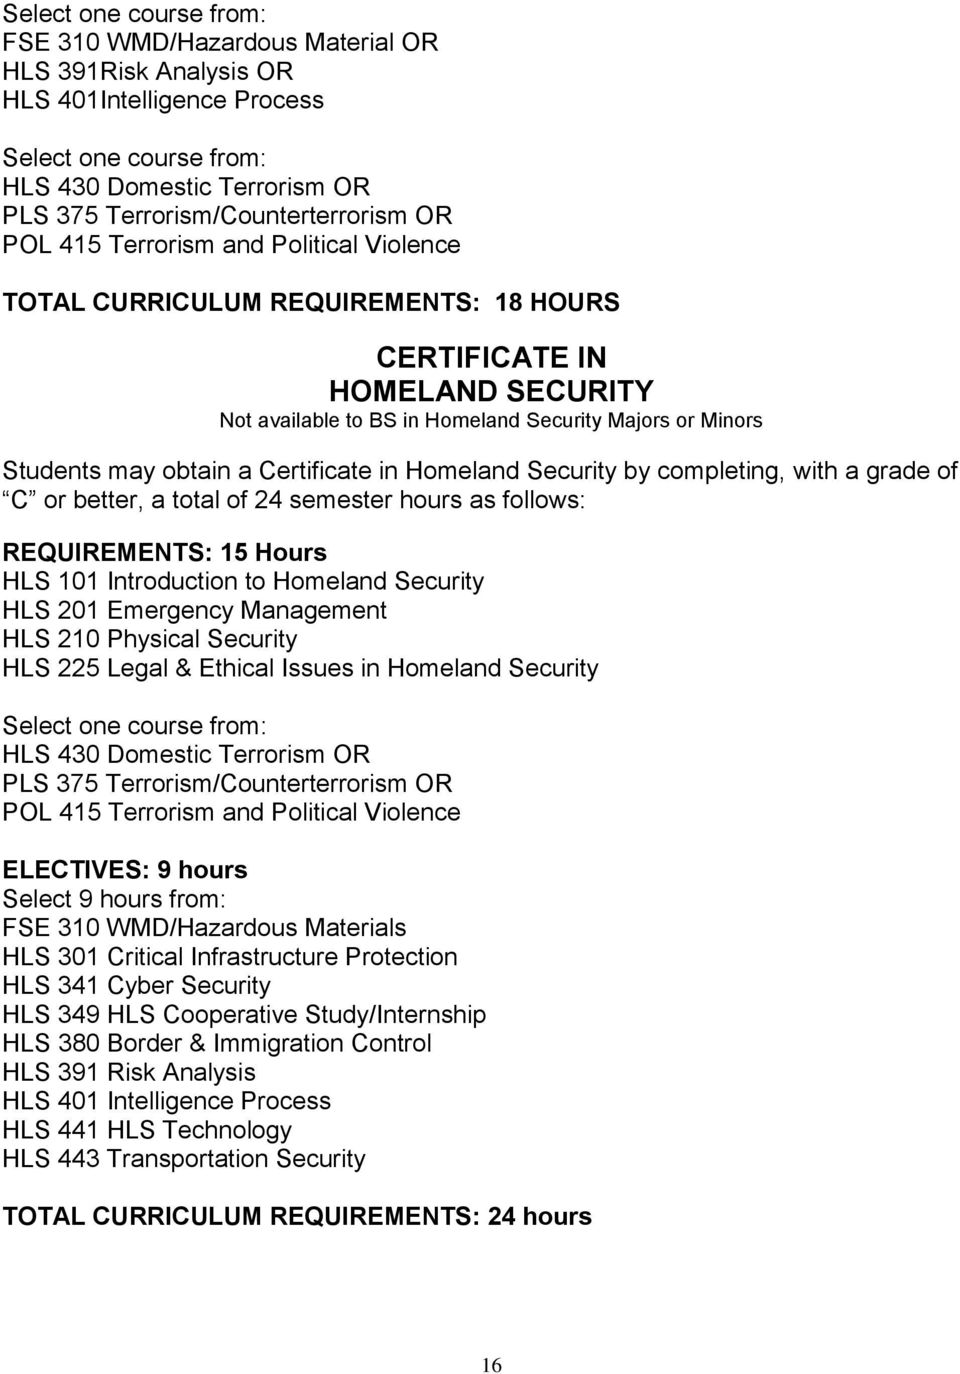 Certificate in Homeland Security by completing, with a grade of C or better, a total of 24 semester hours as follows: REQUIREMENTS: 15 Hours HLS 101 Introduction to Homeland Security HLS 201